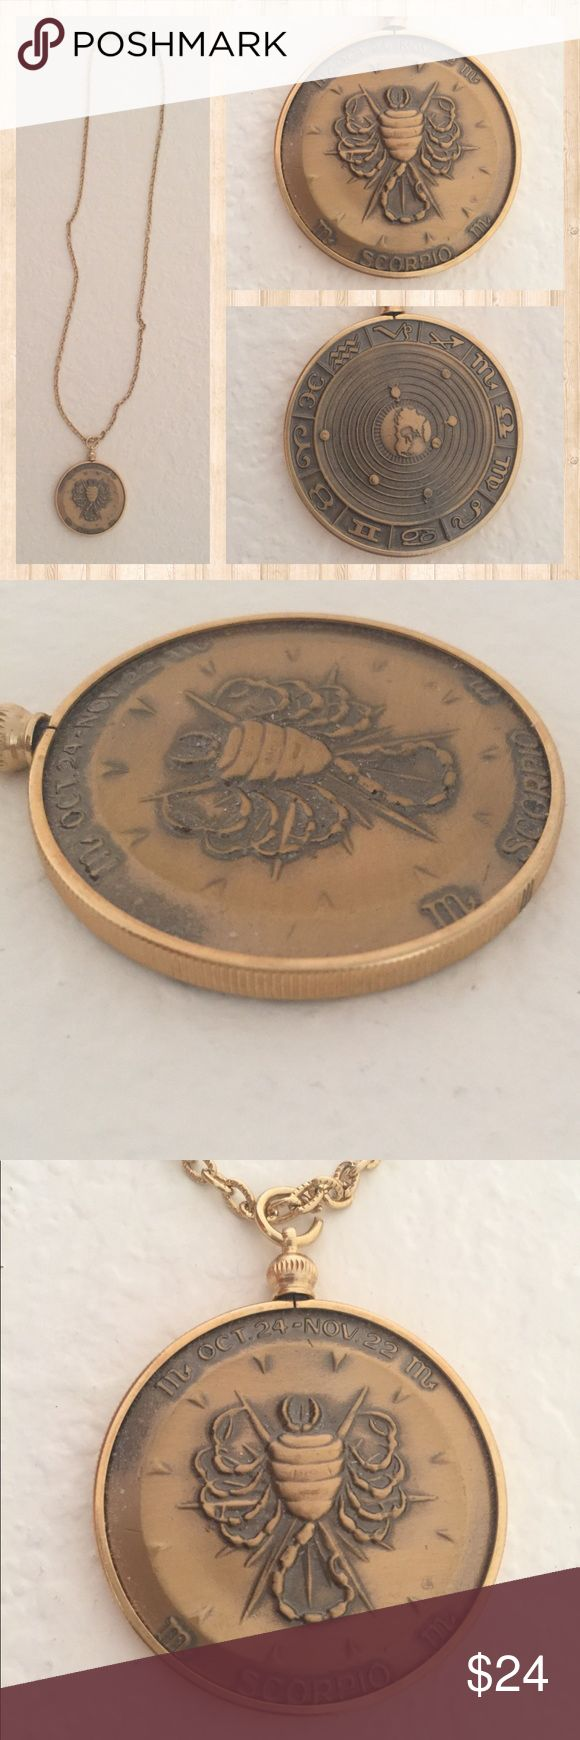 "SCORPIO Brass Horoscope Medallion Style Pendent Are you a Scorpio? Men or Women born October 24th - November 22nd. This is a vintage piece that has been in my drawer since it was brand new. Never worn NWOT. I would love to see someone else enjoy it. The medallion is Brass. Do not know what the chain metal is. The diameter of the medallion is 1 1/2"" Wide. Chain length is 24"". The Medallion has some depth to it, like a coin, as pictured. Front shows Scorpio sign, back side shows all of the…"